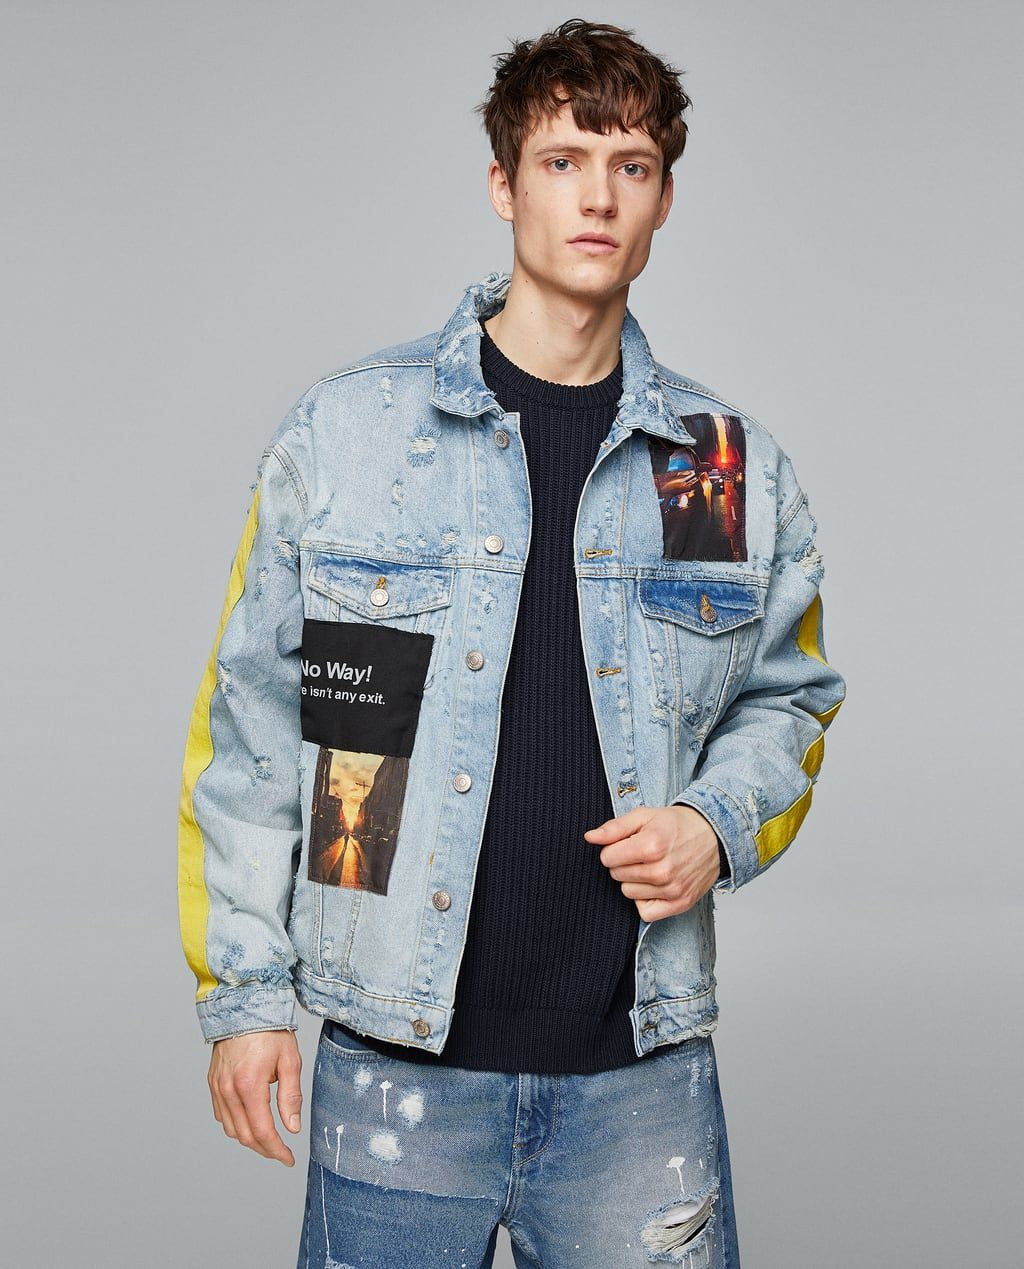 bdebe0a69 Men's Jackets | New Collection Online | ZARA United States ...